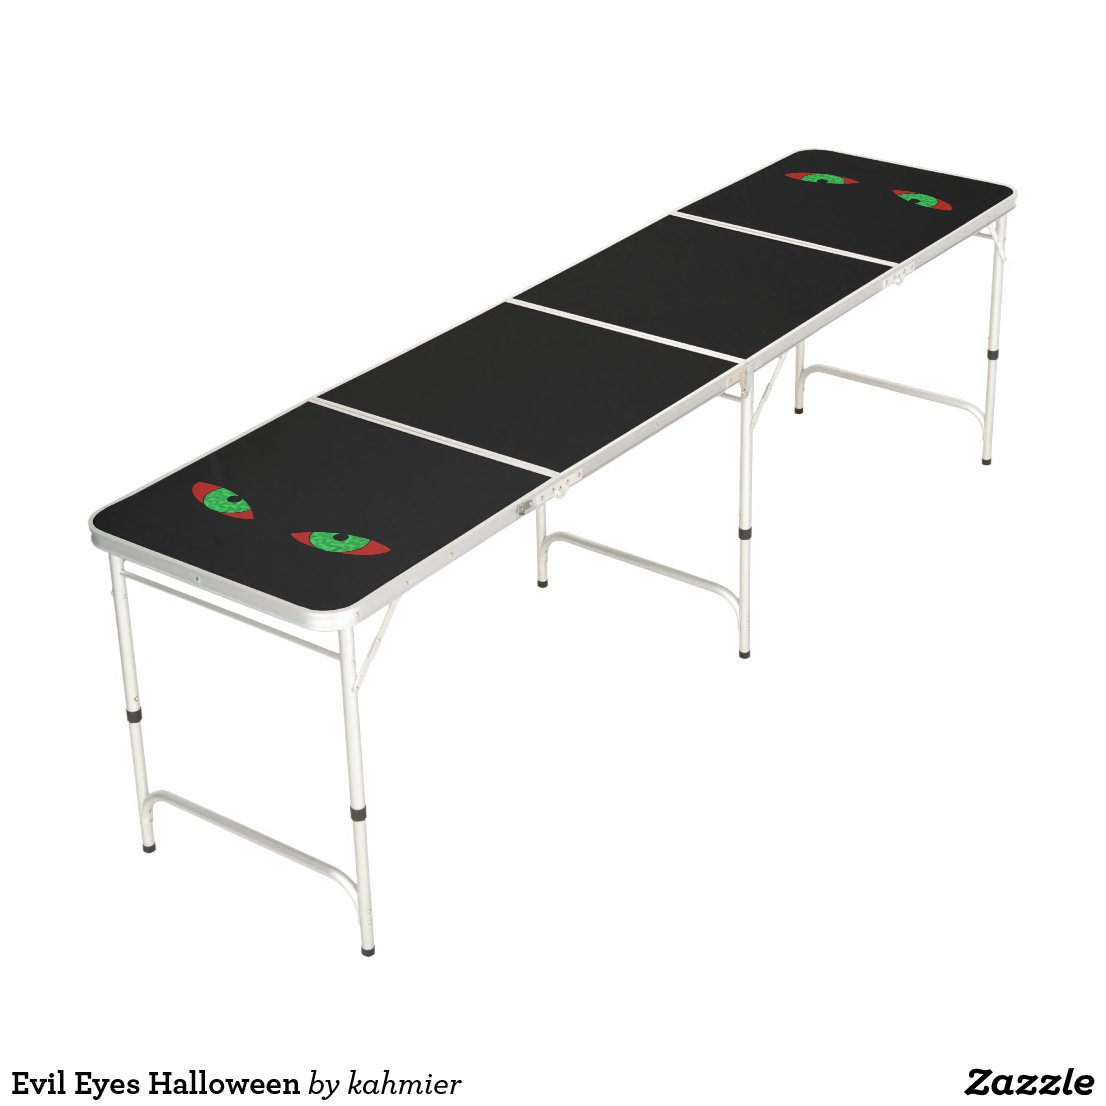 Evil Eyes Halloween Beer Pong Table